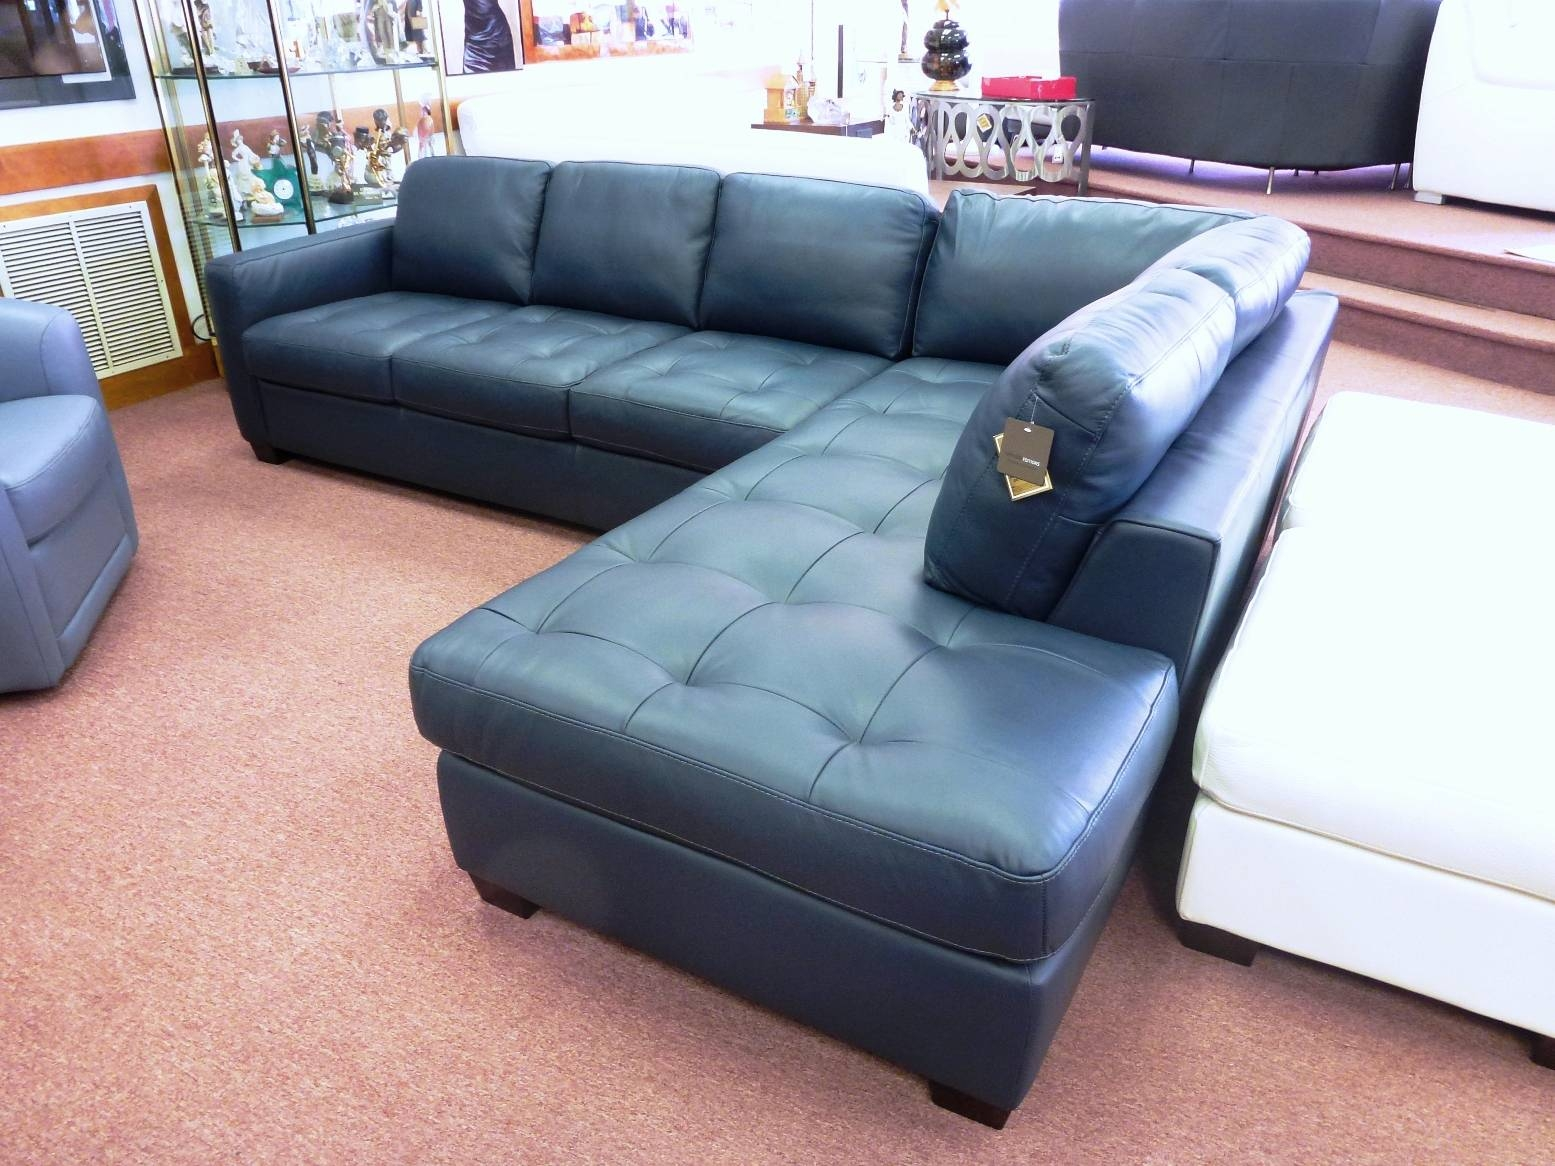 Navy Blue Leather Sectional Sofa And B Navy Blue Leather Sectional for Blue Leather Sectional Sofas (Image 12 of 15)